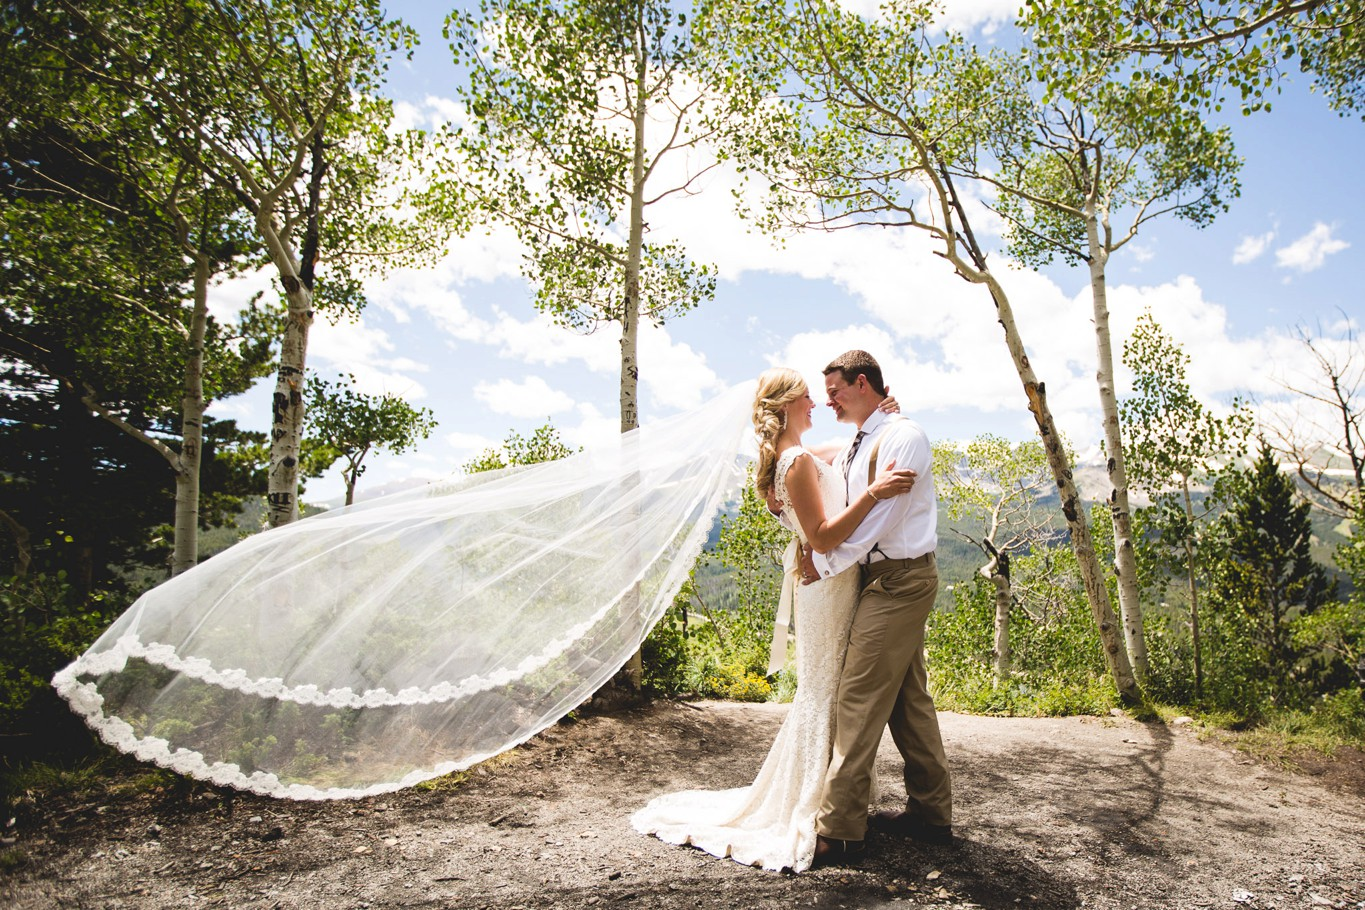 Tiana Jared Preview Wedding Photography Breckenridge Co Sarah Gudeman